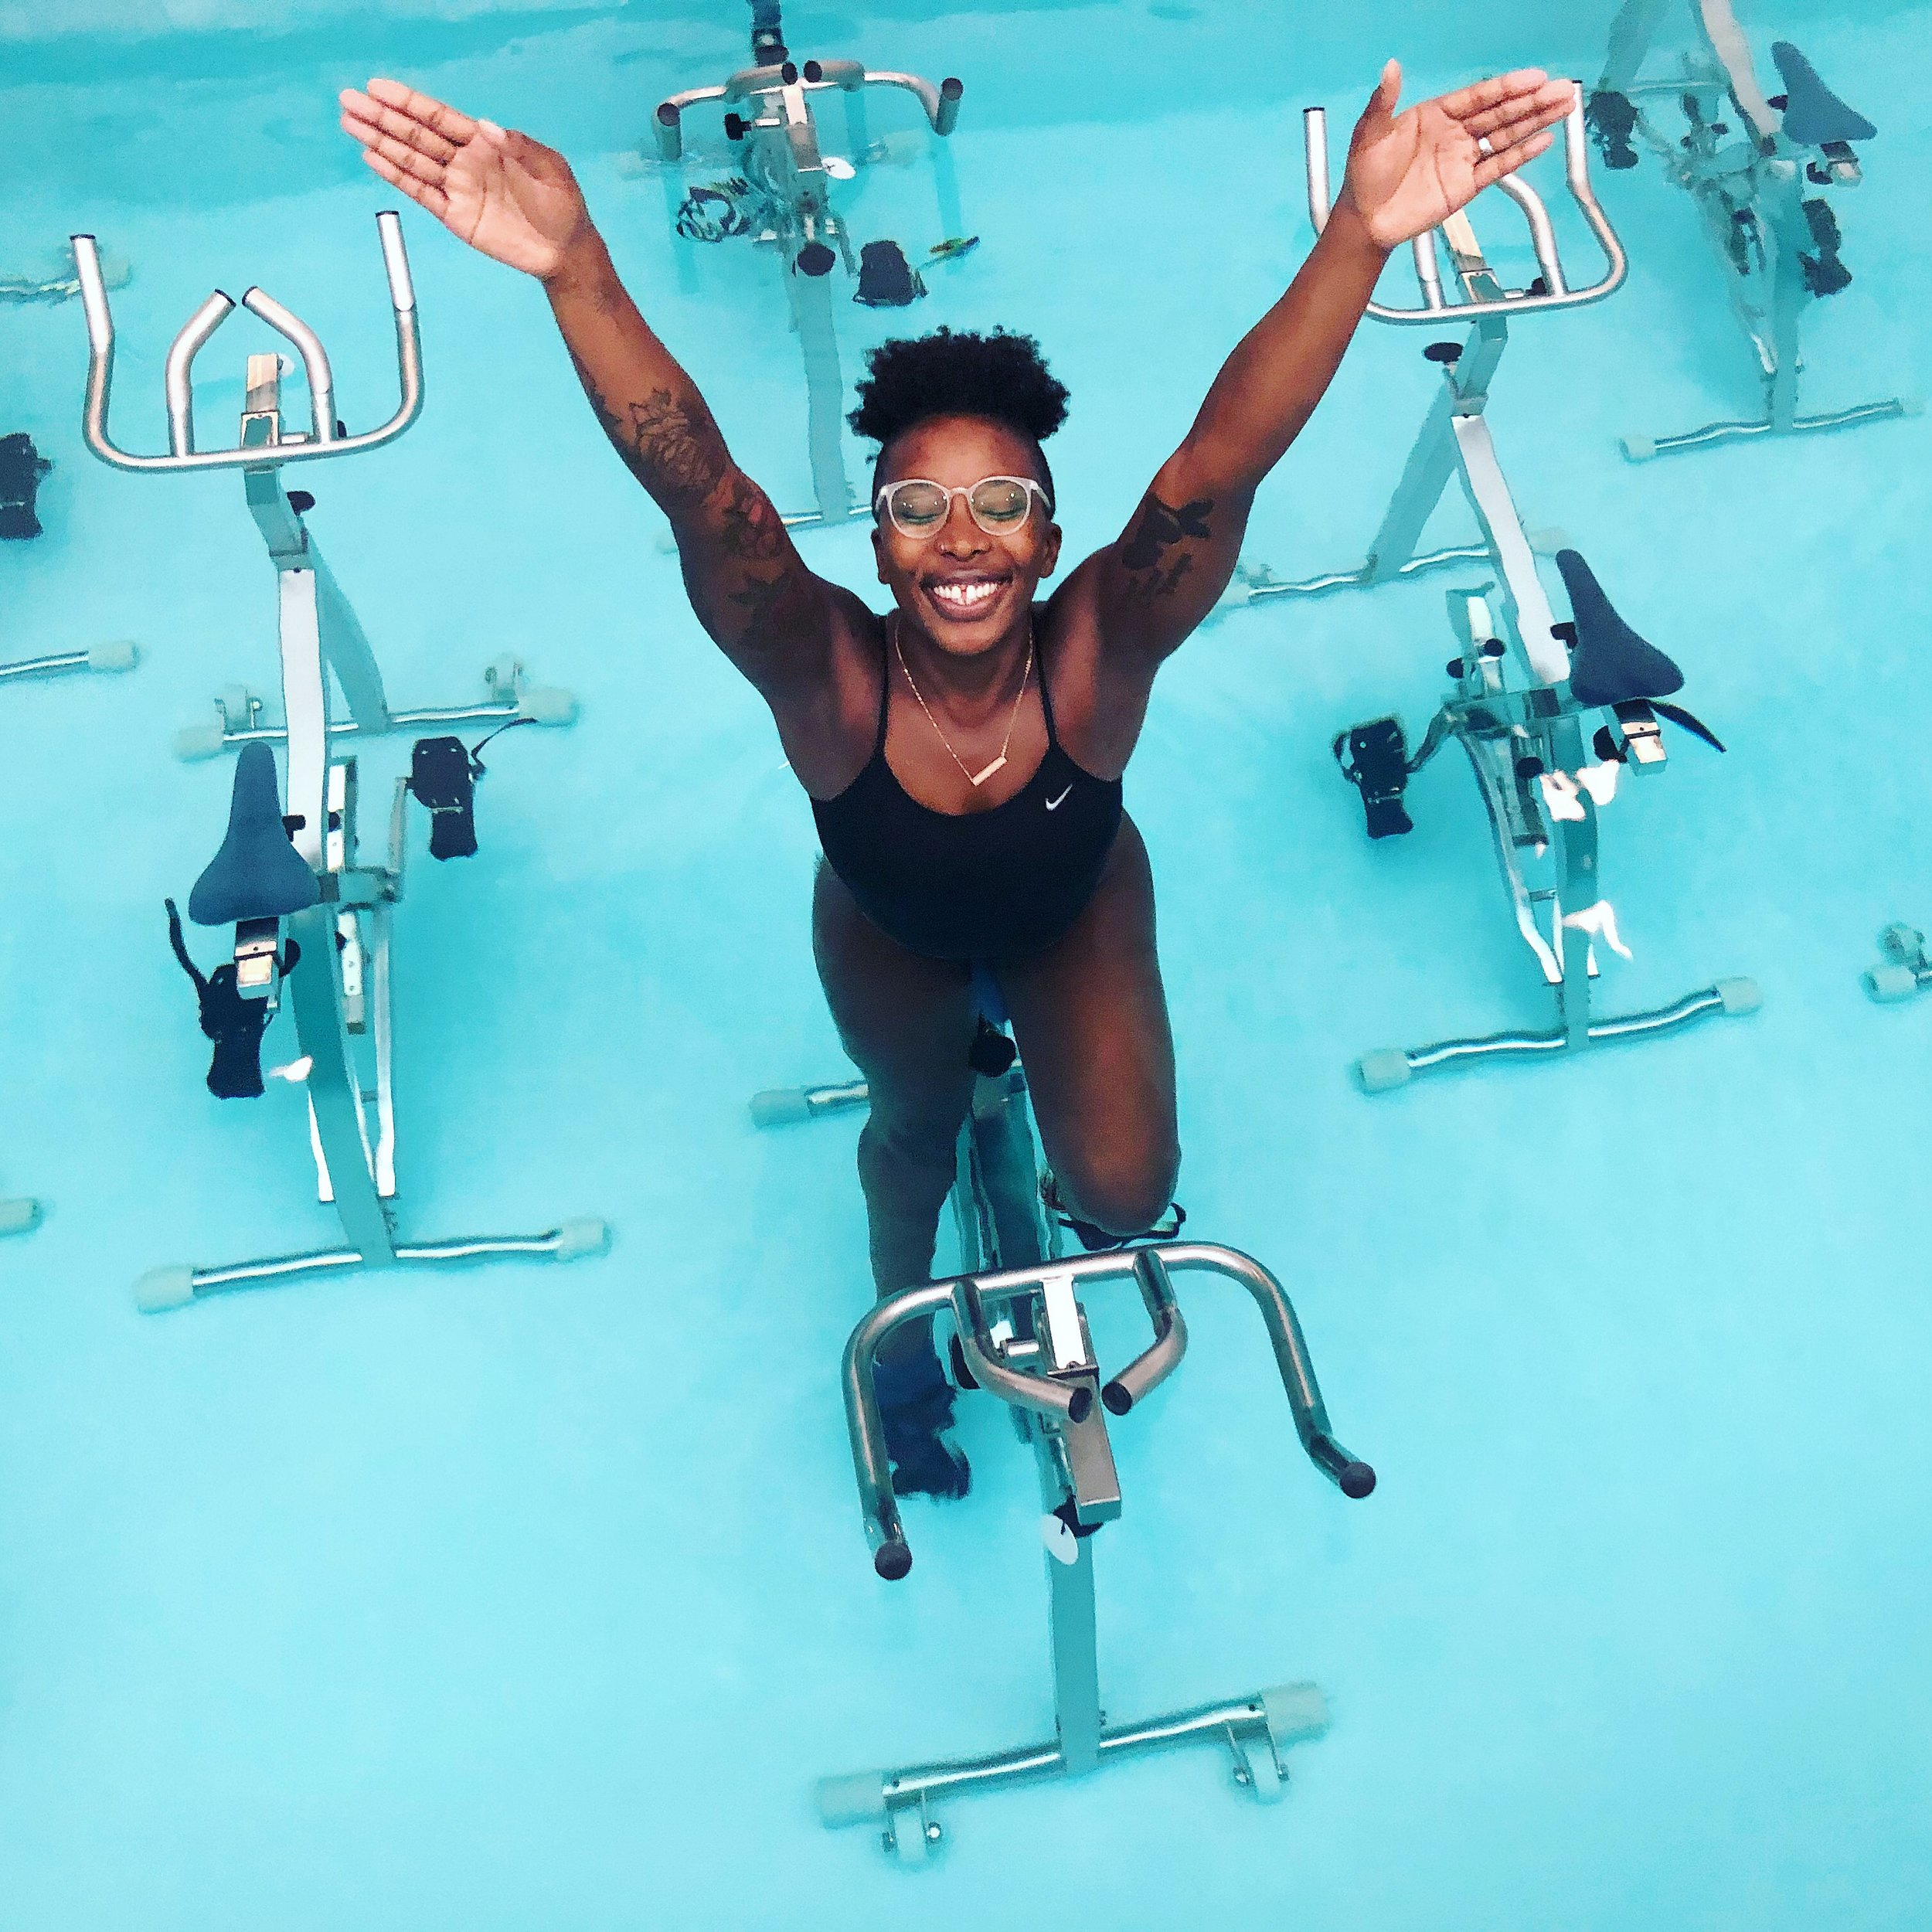 """Alvina Brown - Born and raised in the athletic world, Alvina has always gravitated towards adrenaline workouts and activities. While Alvina is full of energy and joy, as a NASM certified personal trainer and certified Yoga Teacher, she also appreciates the science behind exercising and the benefits of a well-rounded yoga practice. After taking her first FLOW AQUA Class, she was drawn to the yogi aspects of this relaxing yet challenging class and fell in love with the format. Alvina's philosophy is: """"numbers do not matter; feeling good and eating good food is when the magic happens"""". When she is not teaching, Alvina enjoys traveling the world and immersing herself in each culture but also relaxing and detaching from her phone. Be prepared for a knowledge-filled and challenging workout to further your fitness journey.Her Favorite Class: FLOW"""